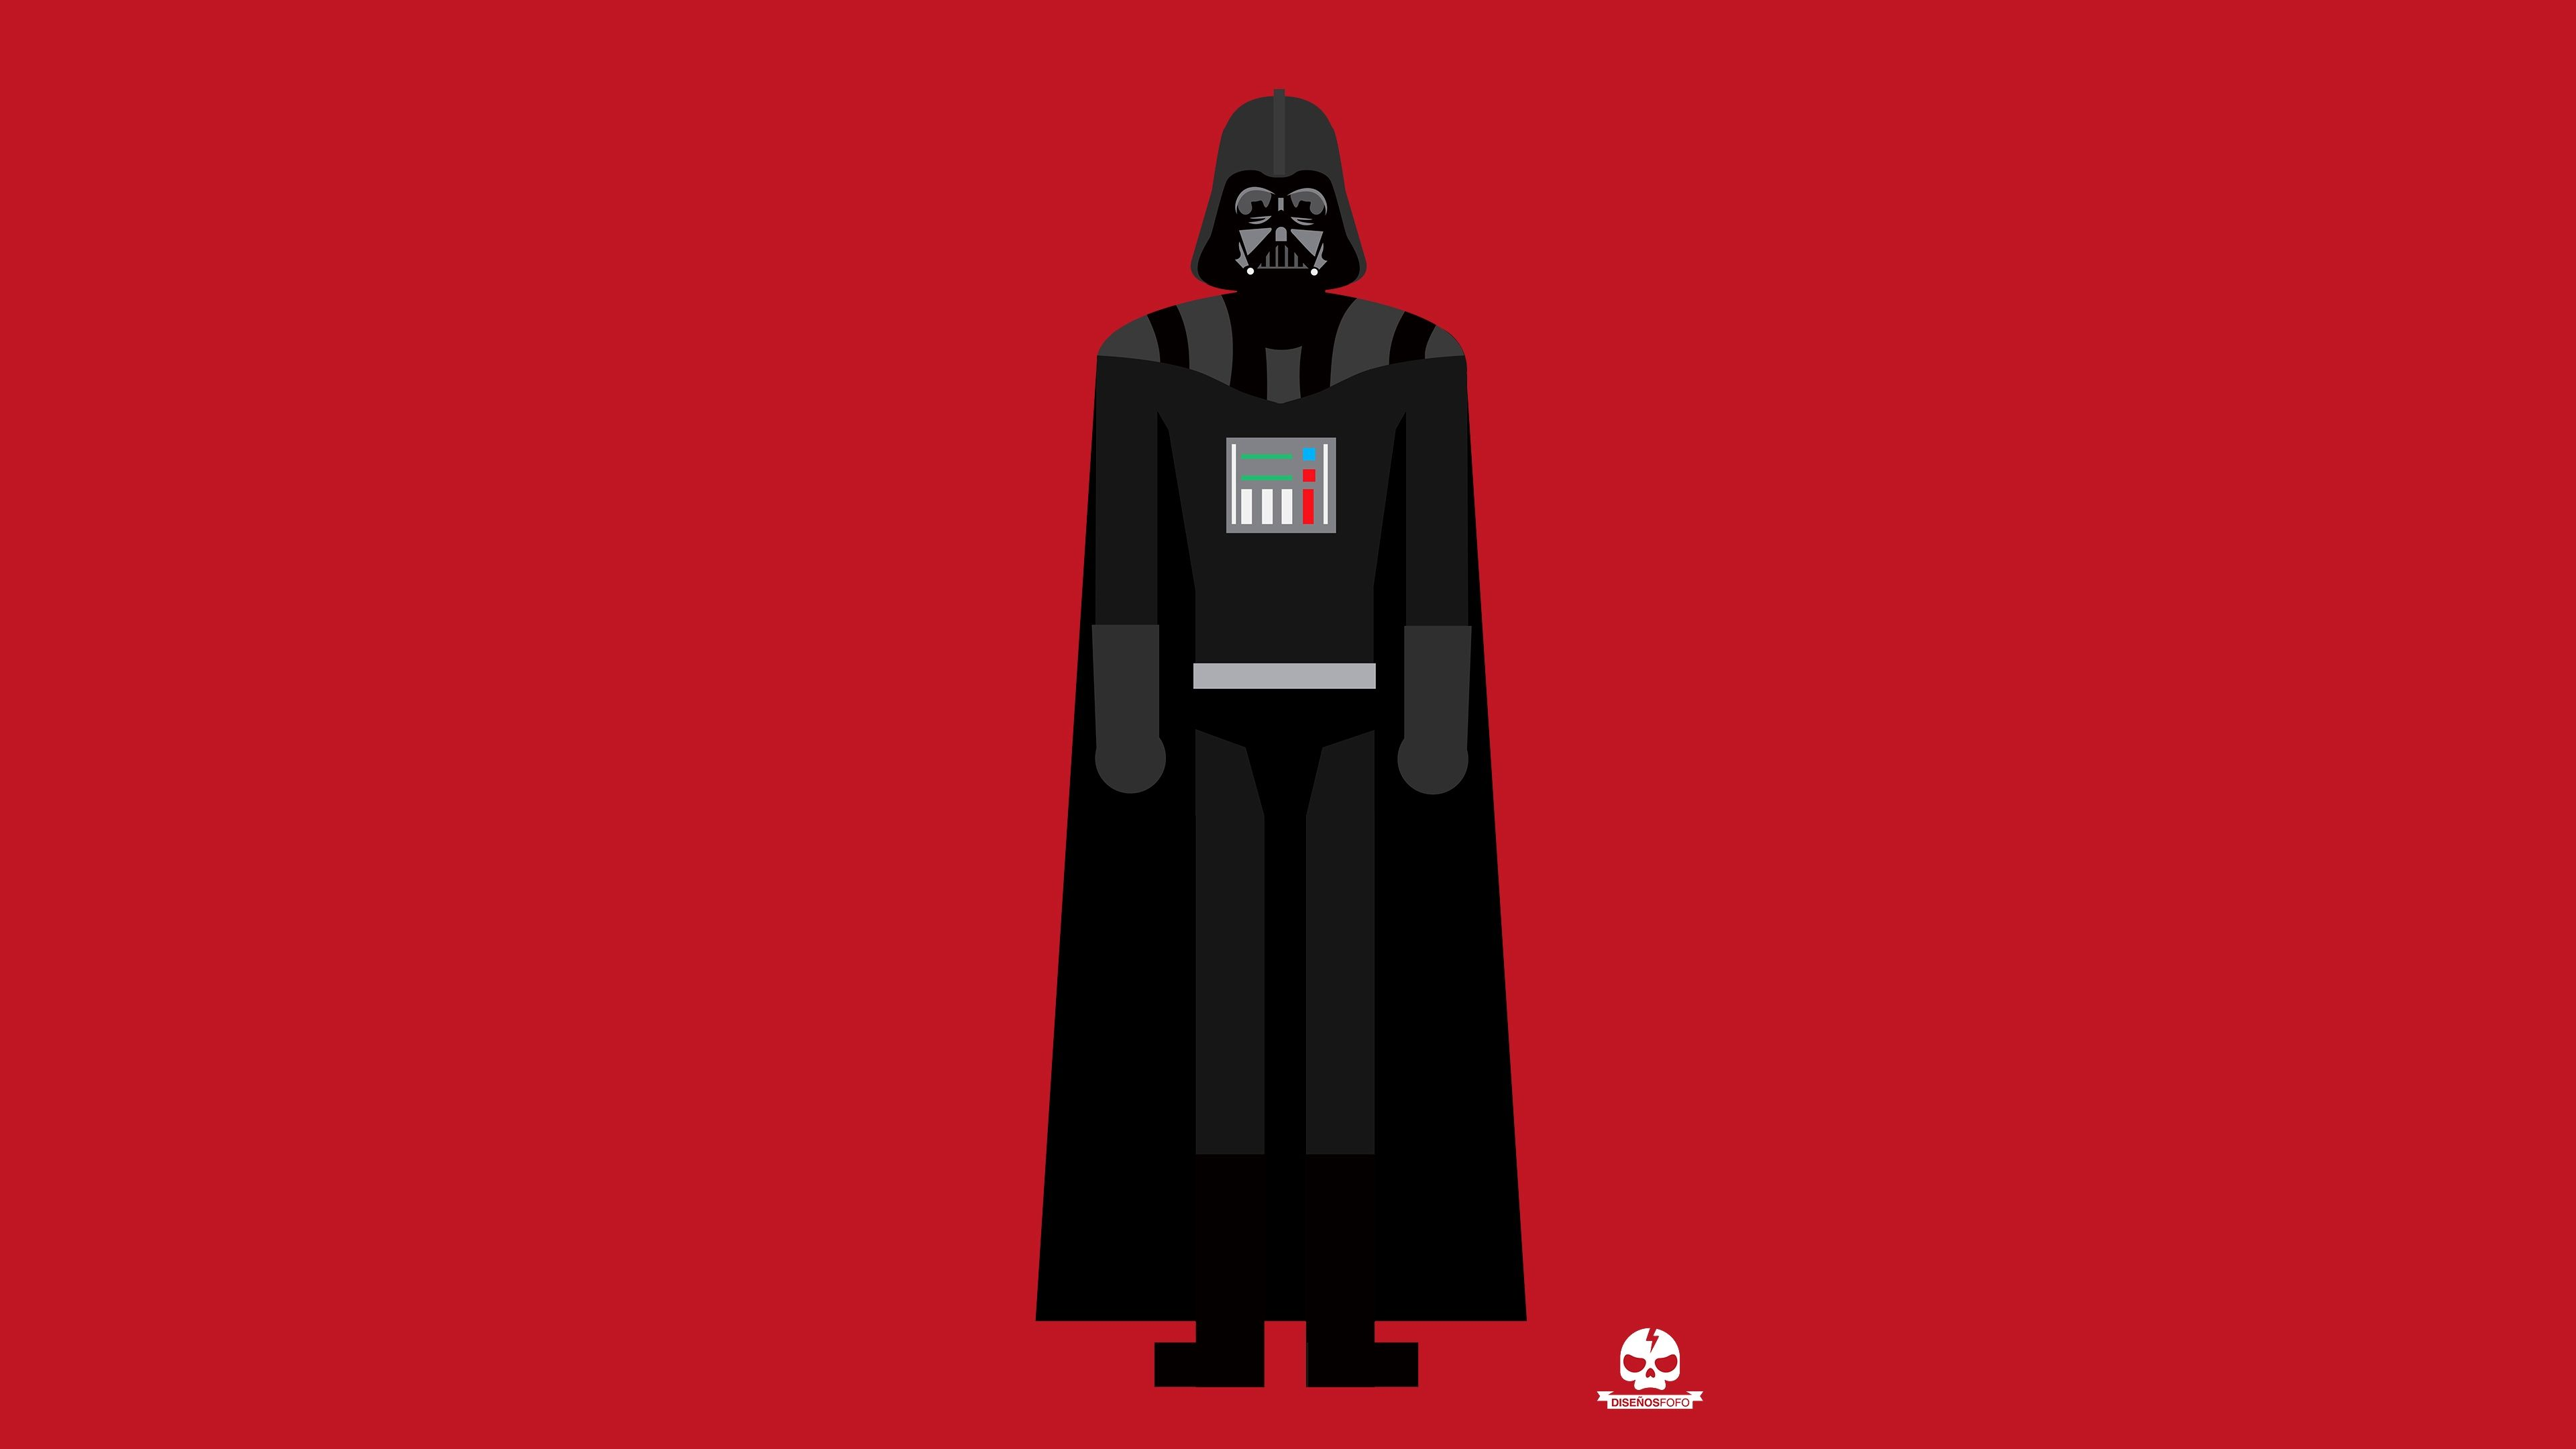 Darth Vader Wallpaper 4k Iphone Ideas